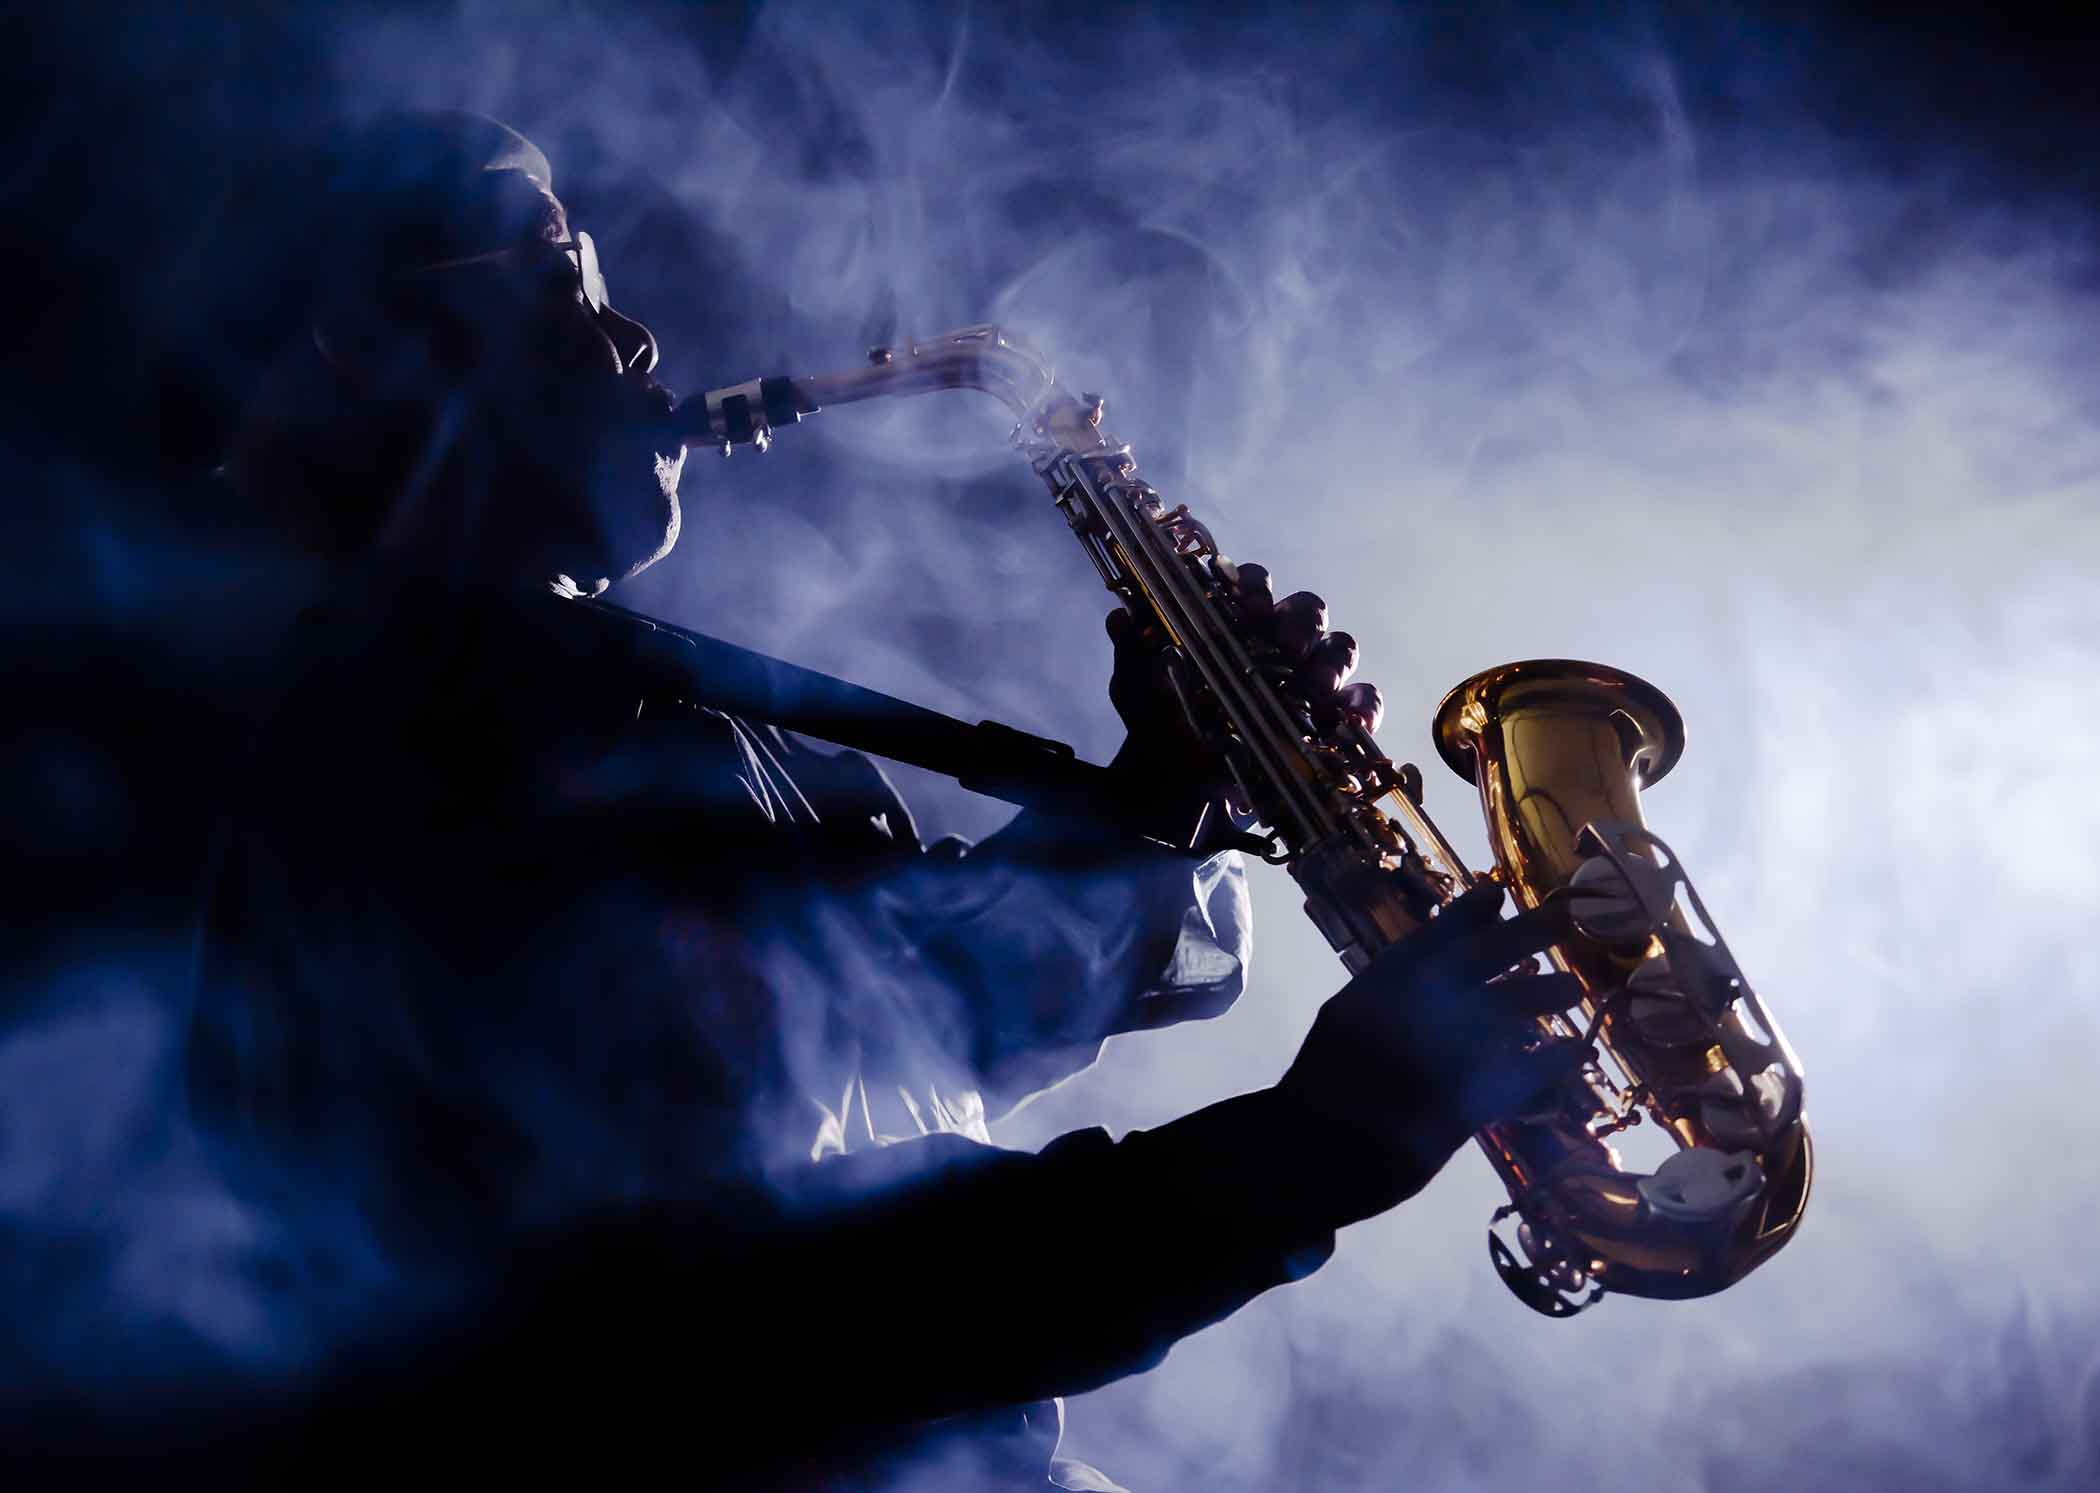 Jazz musician playing with smoke in the air